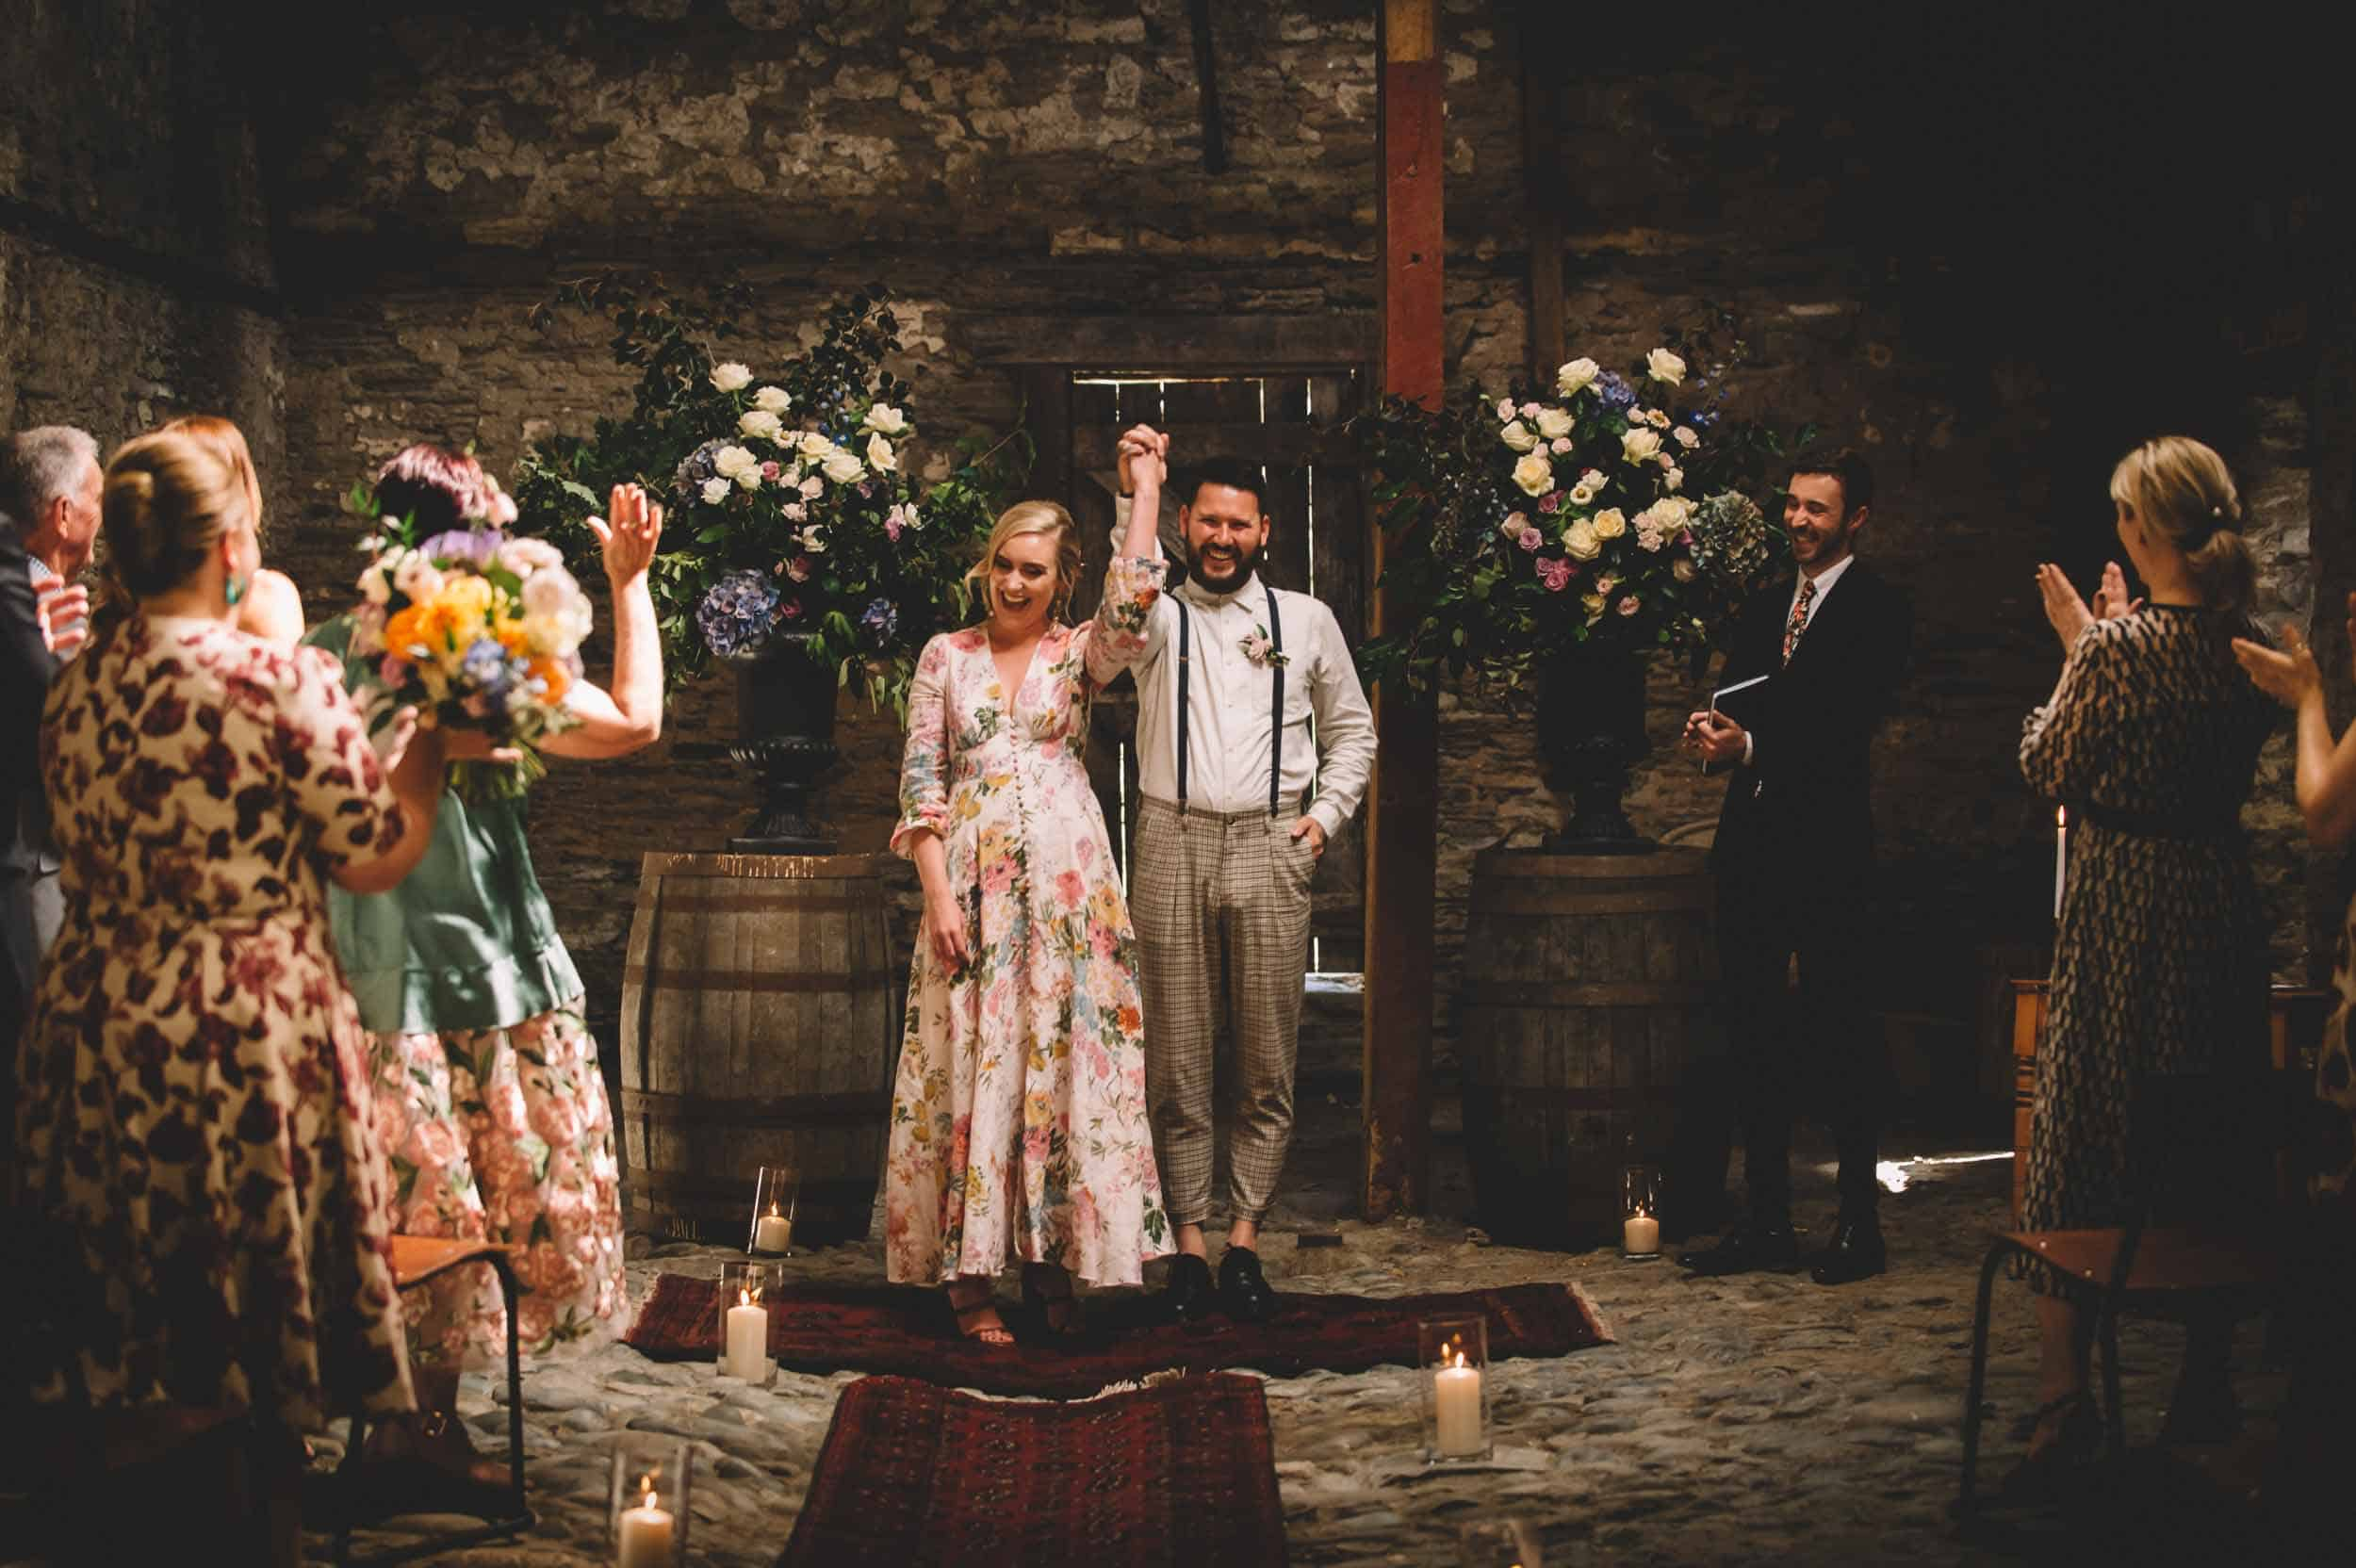 Nick & Nina's Thurlby Domain Elopement old stone stables wedding ceremony